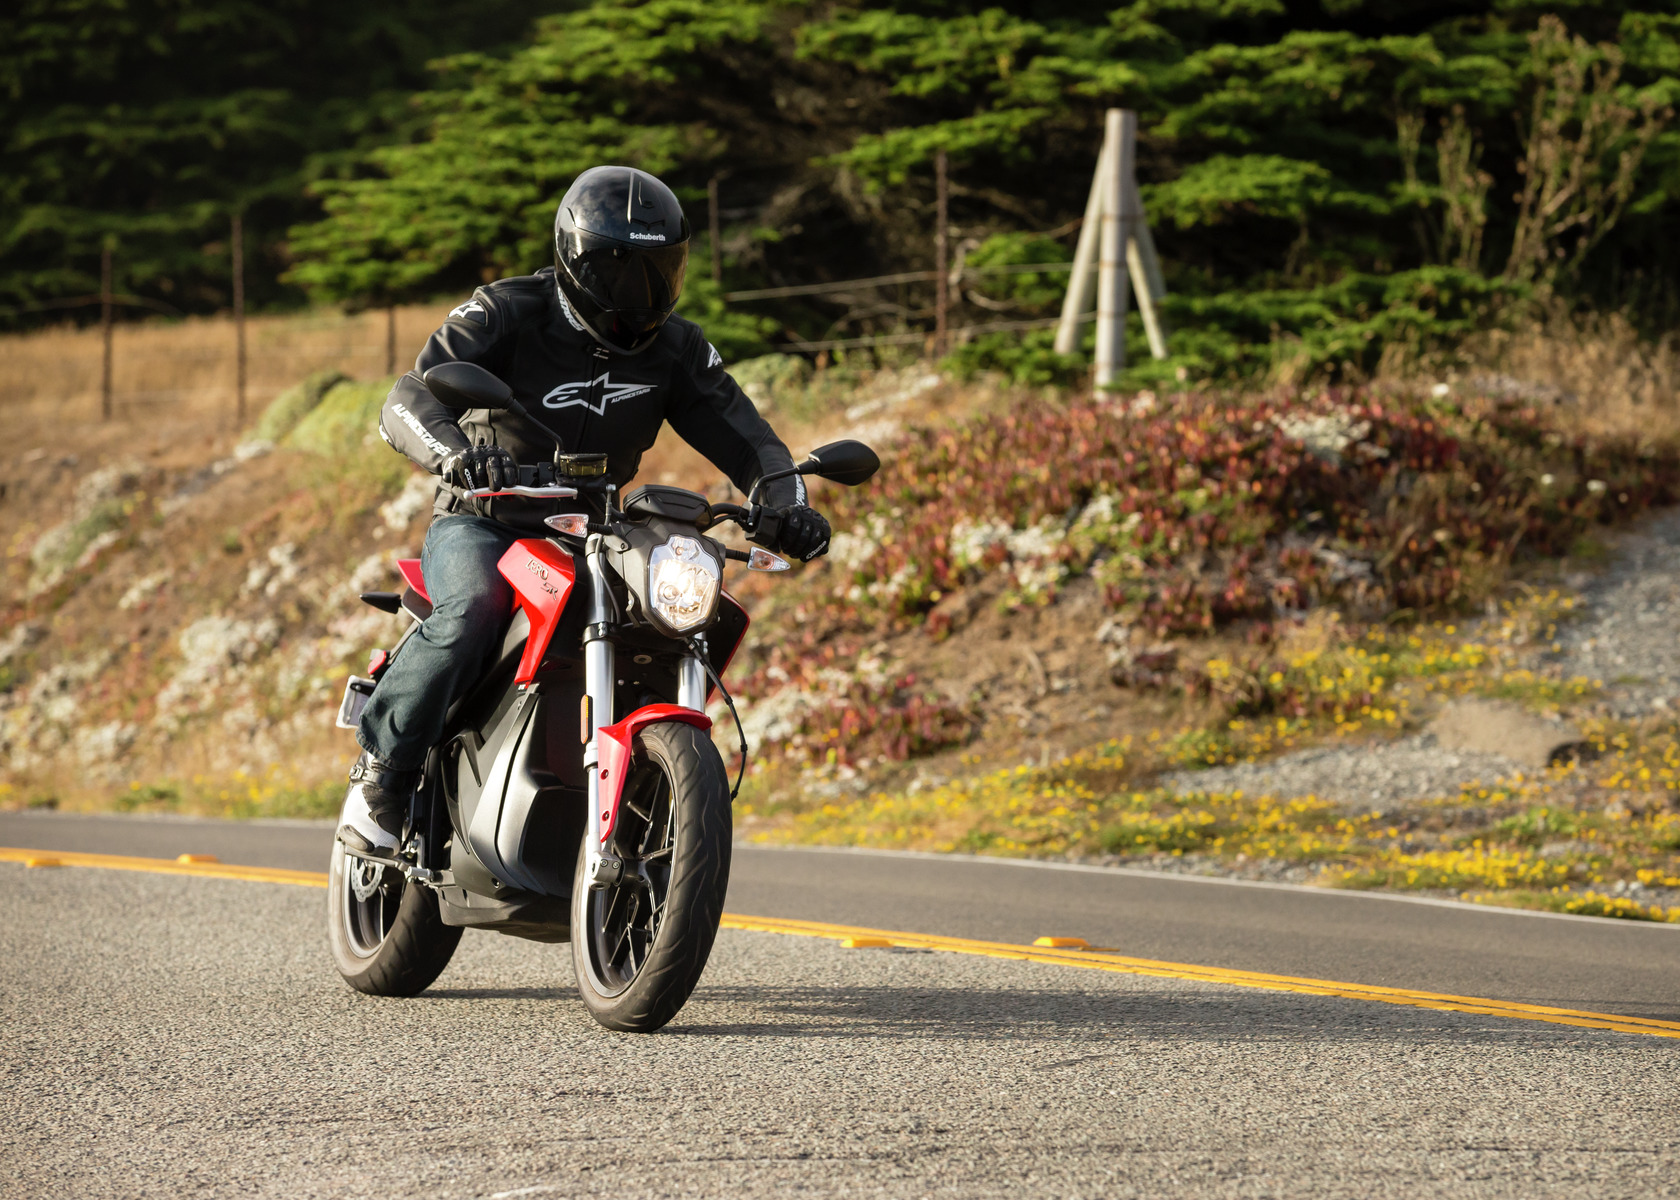 2016 Zero SR Electric Motorcycle: